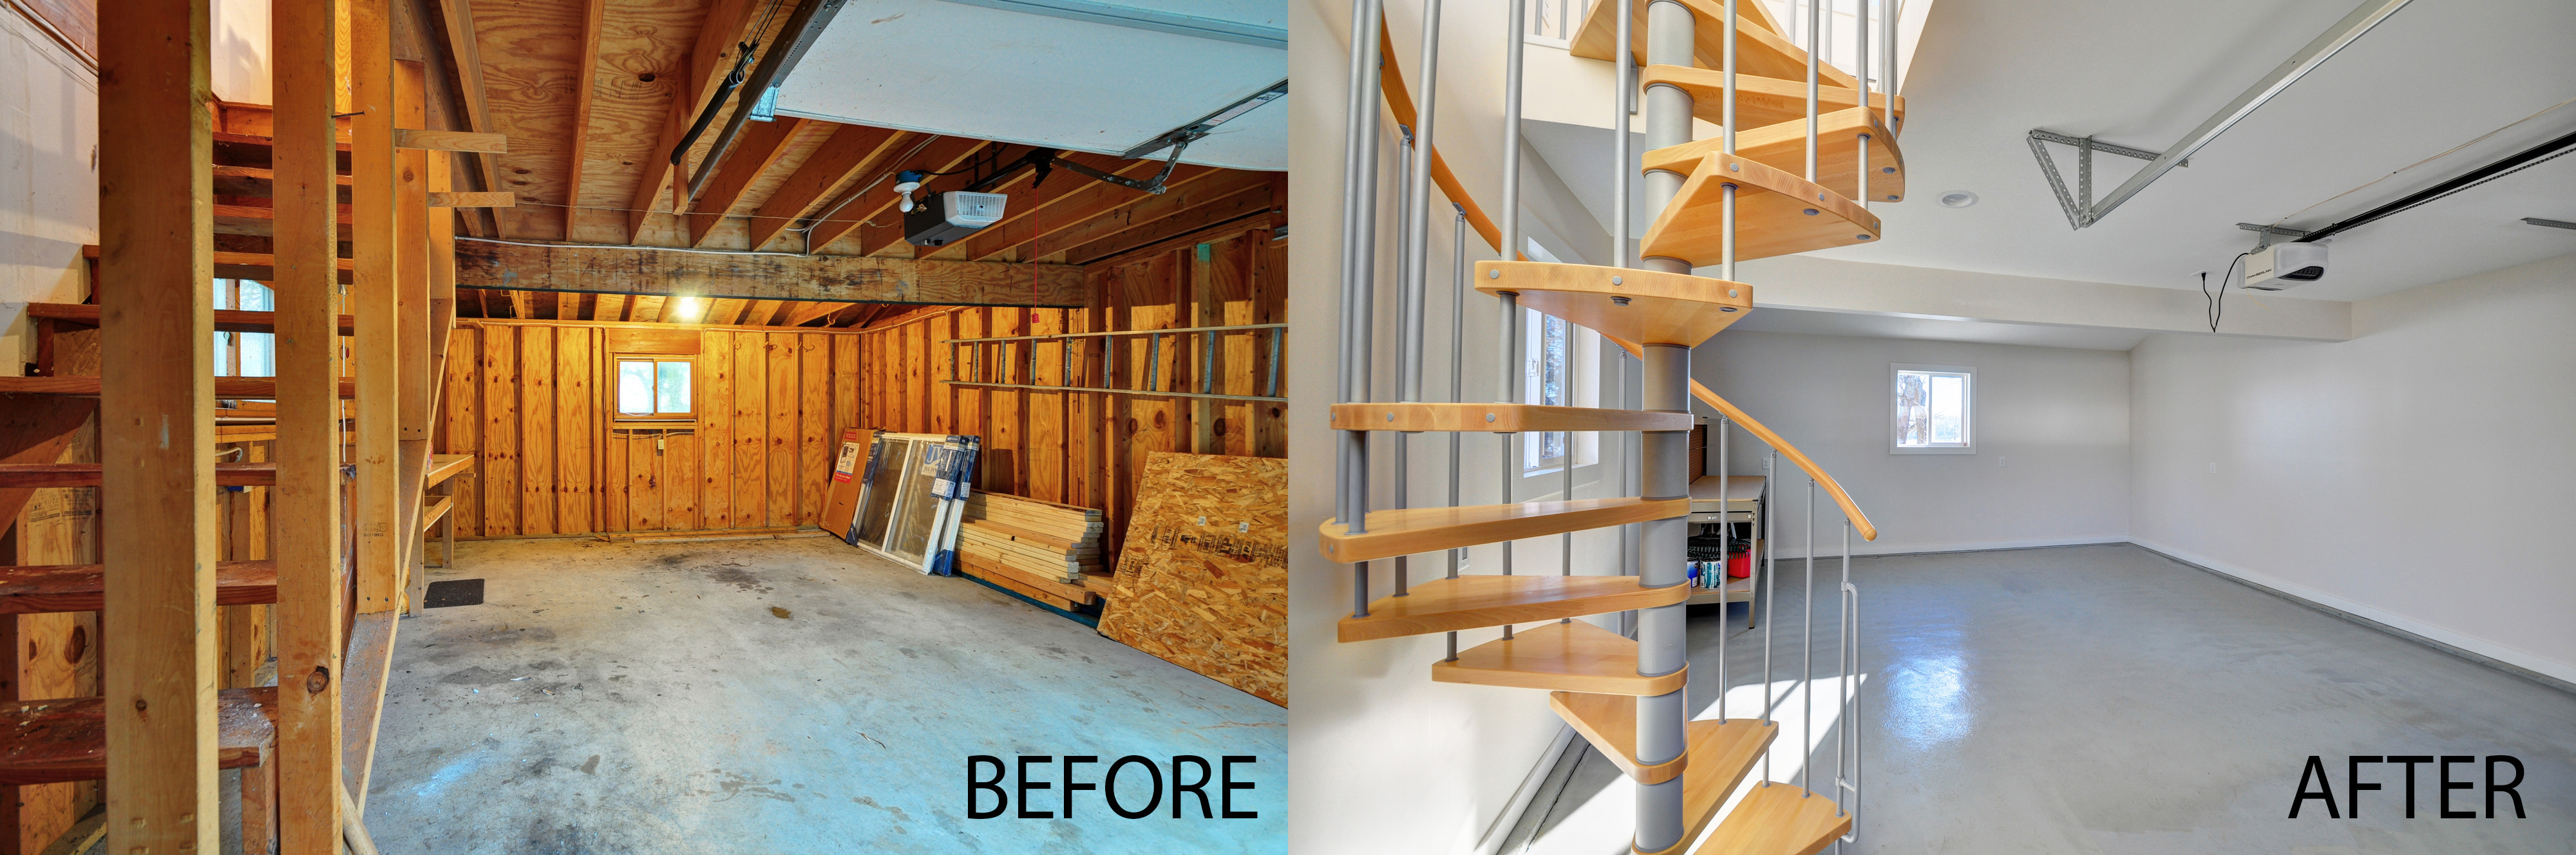 Contact Elite Improvements For Your Custom Garage Remodel Estimate Today